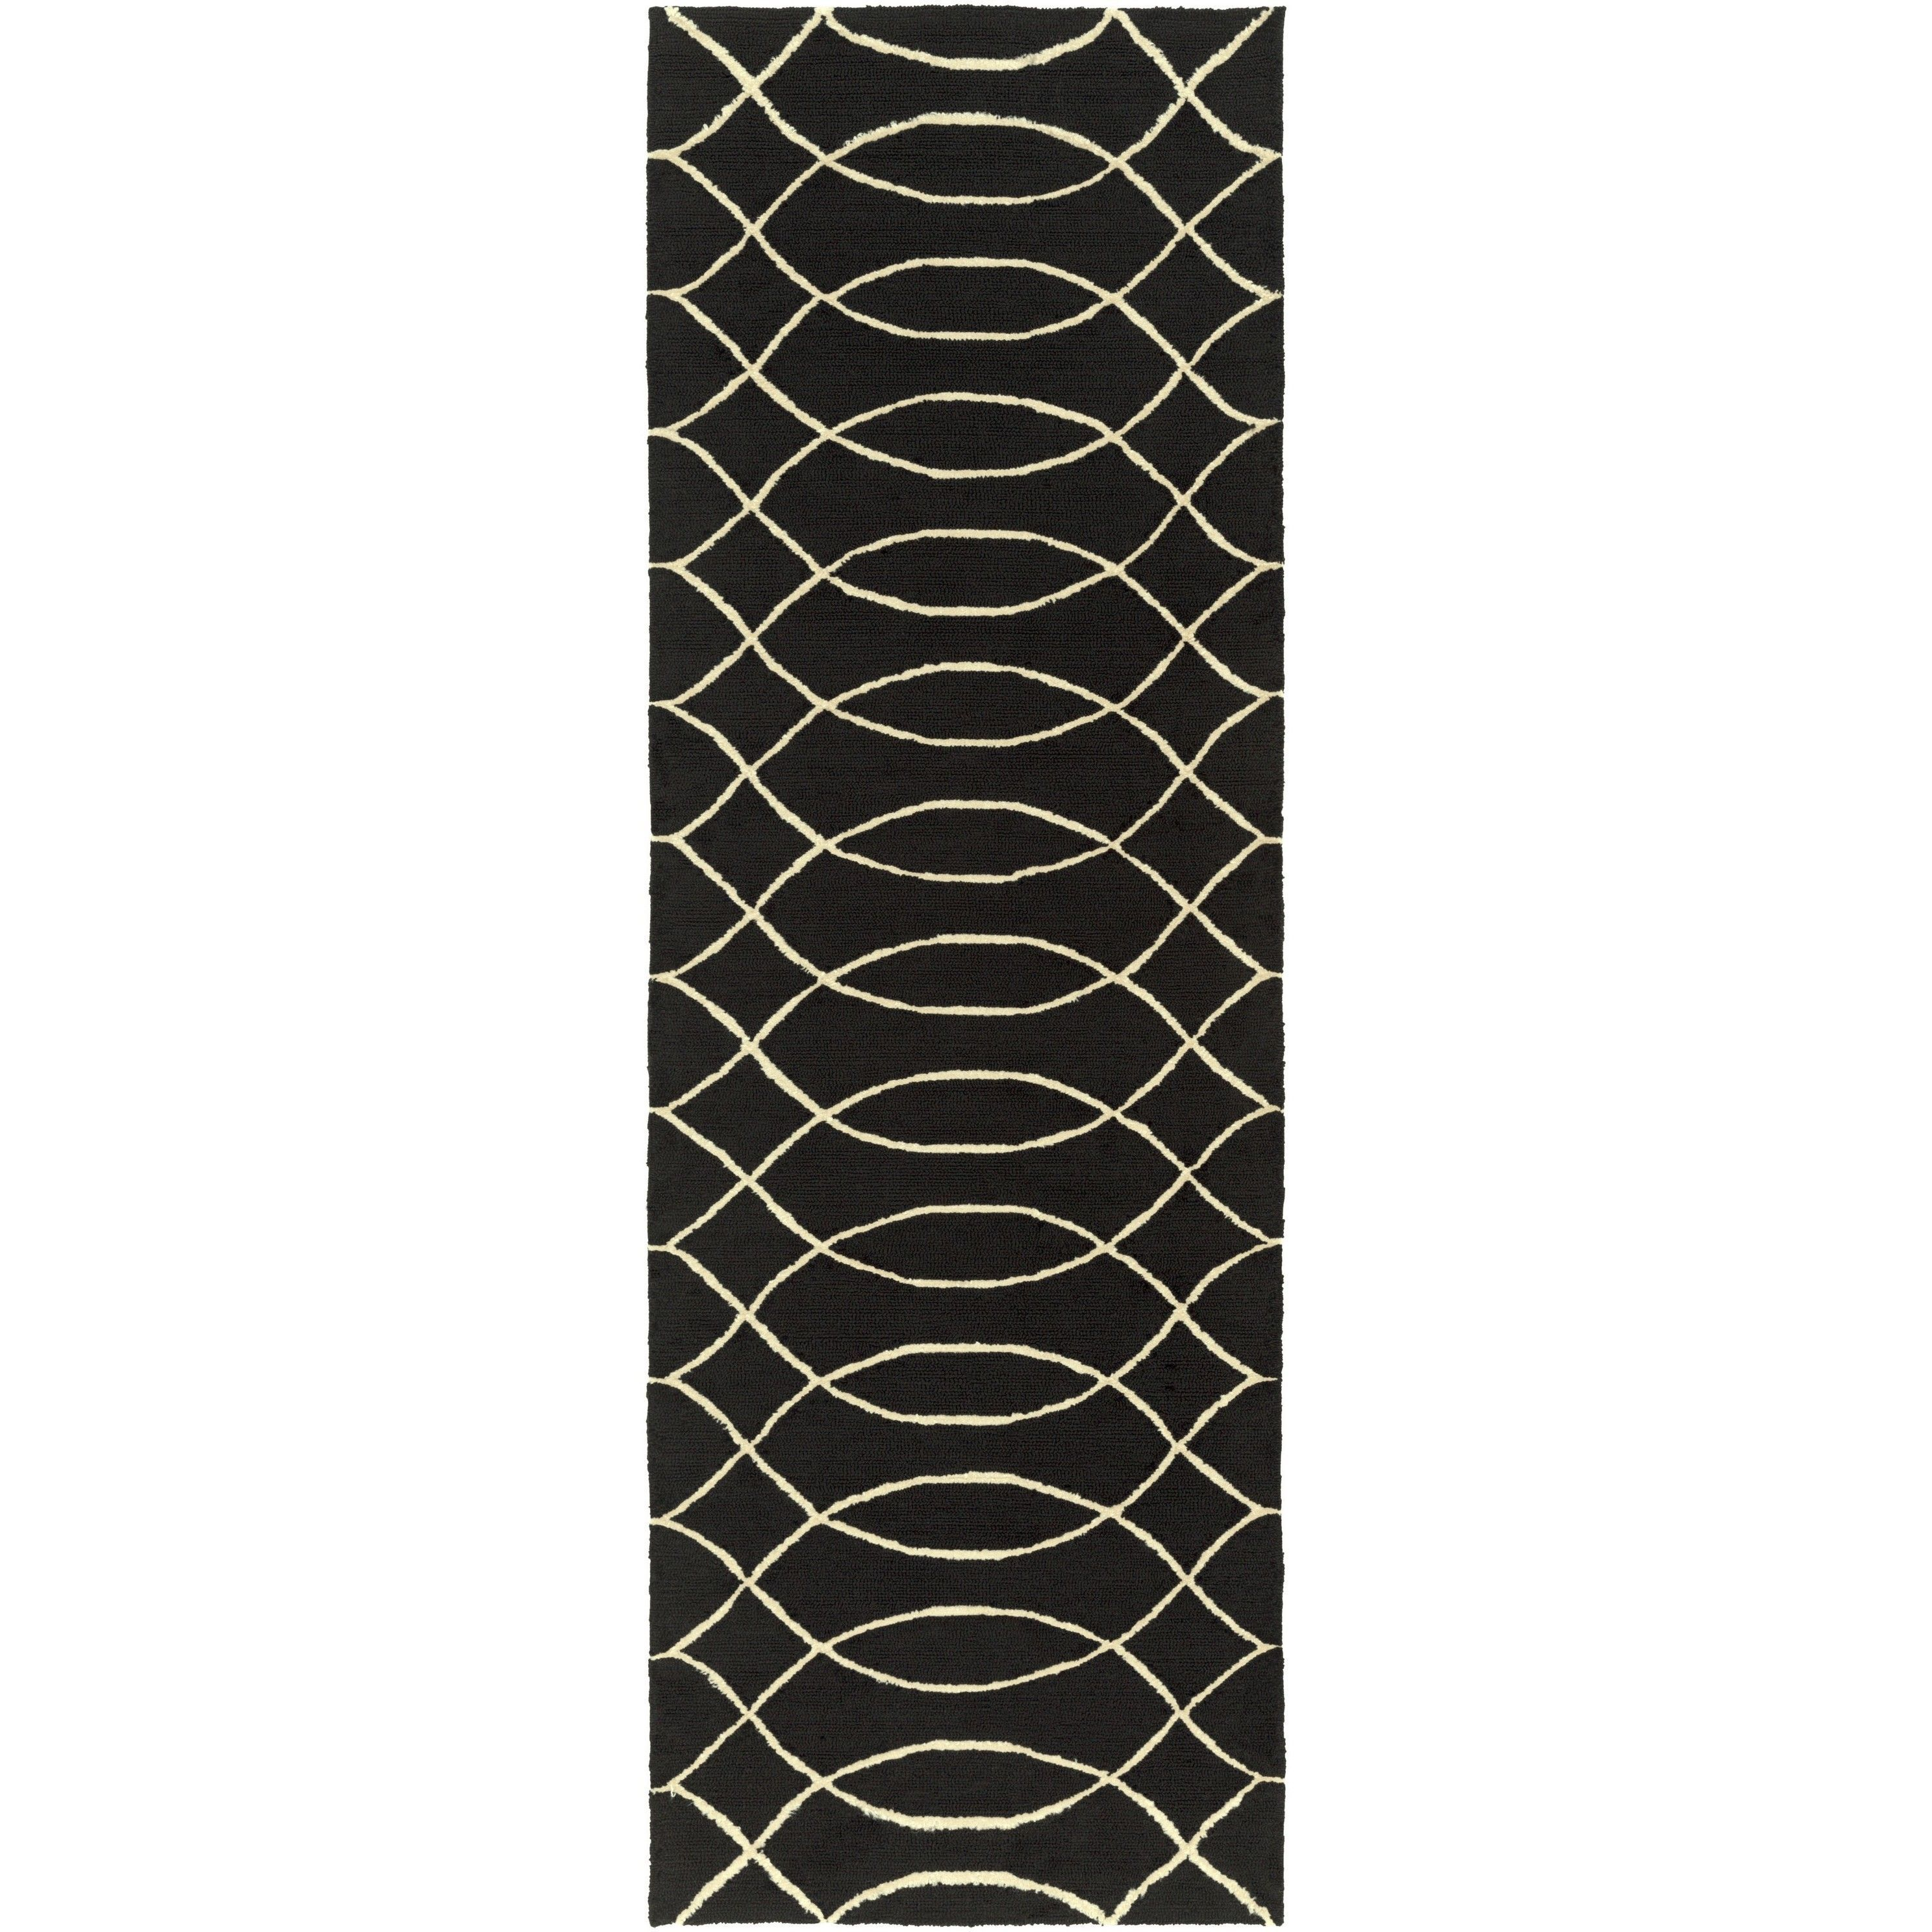 Surya Hand Hooked Newspaper Rug (2'6 x 8') (Spa Blue), Beige, Size 2' x 8' (Plastic, Abstract)